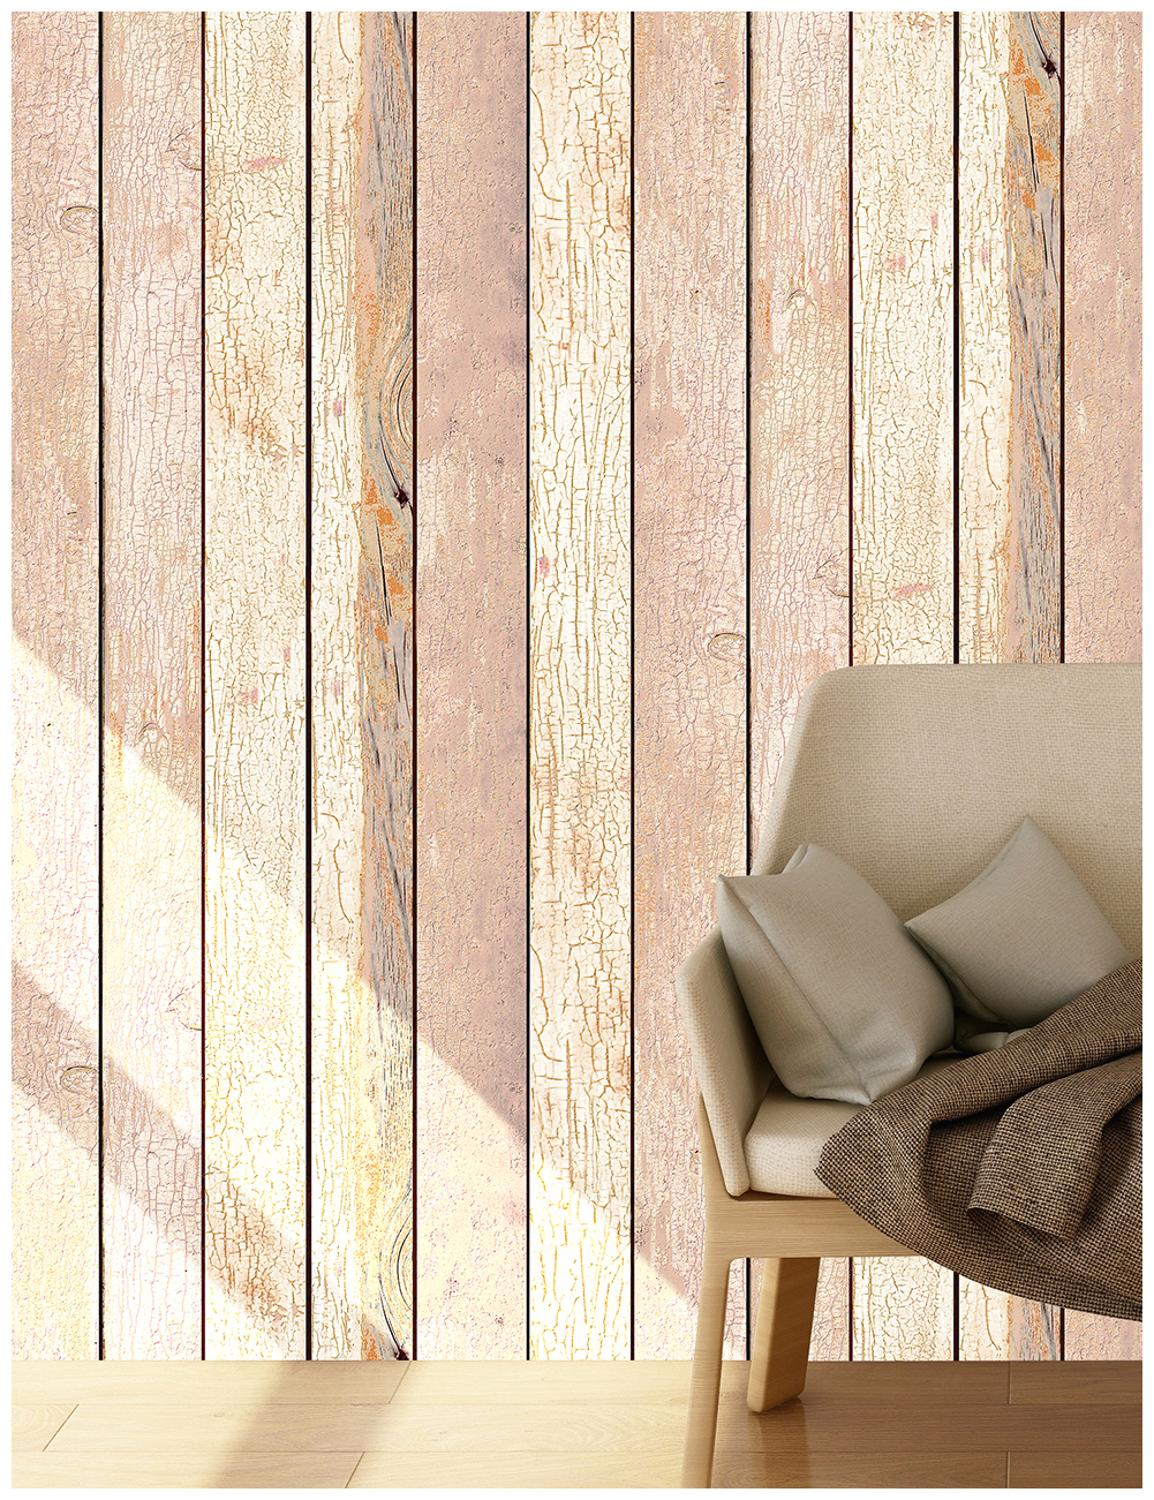 Haokhome Reclaimed Wood Planks